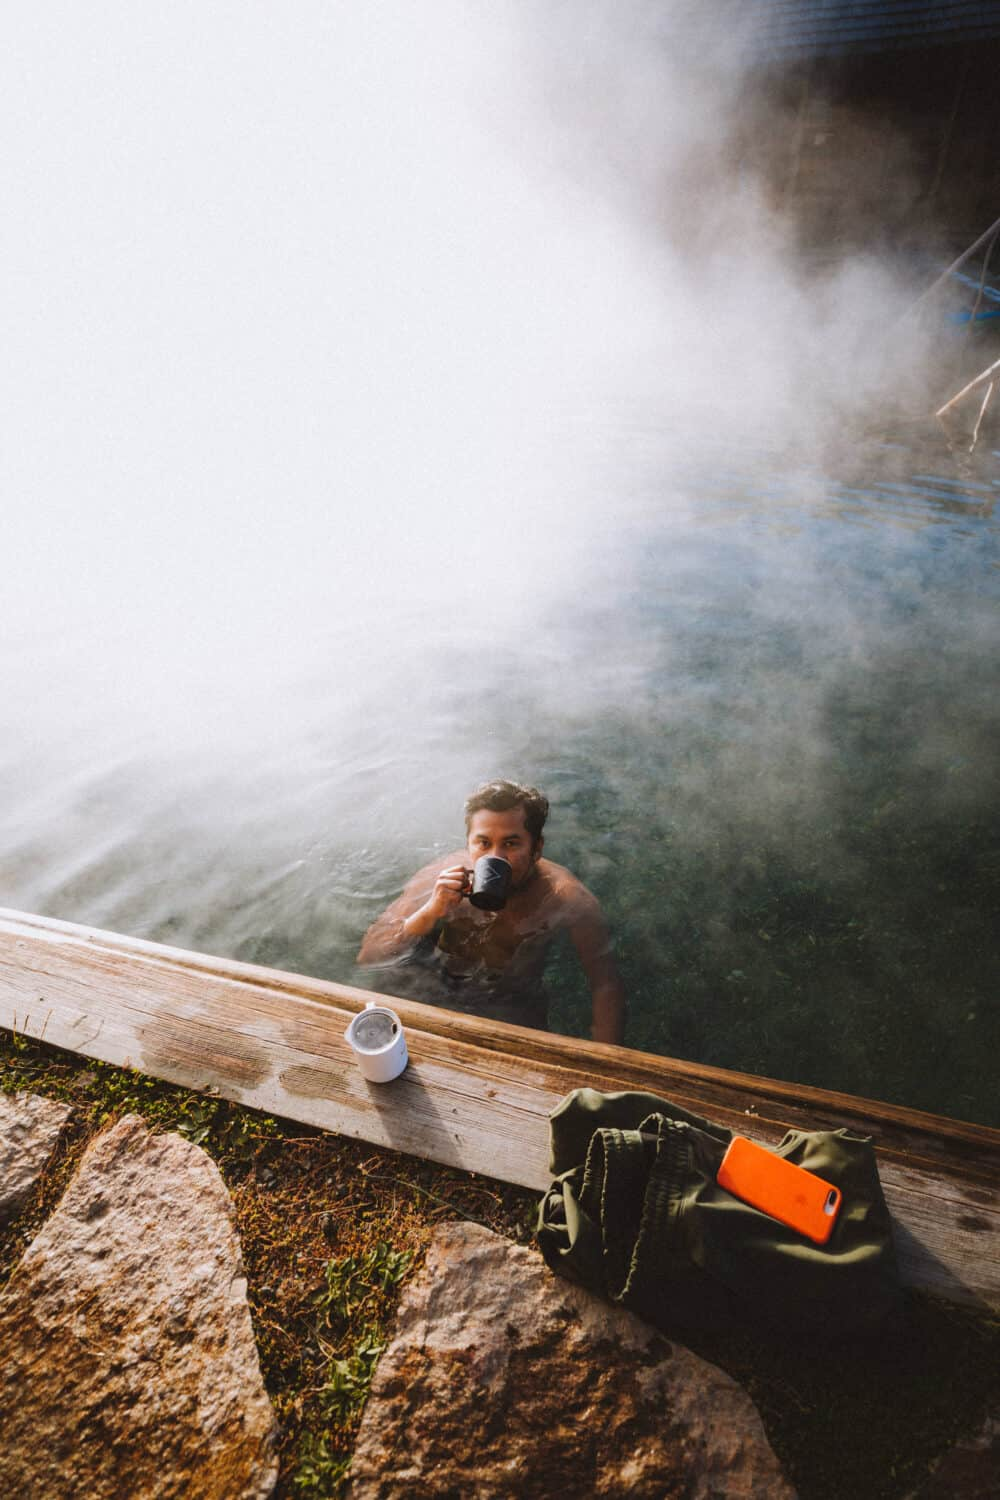 Berty Mandagie sipping coffee poolside at Burgdorf Hot Springs - TheMandagies.com